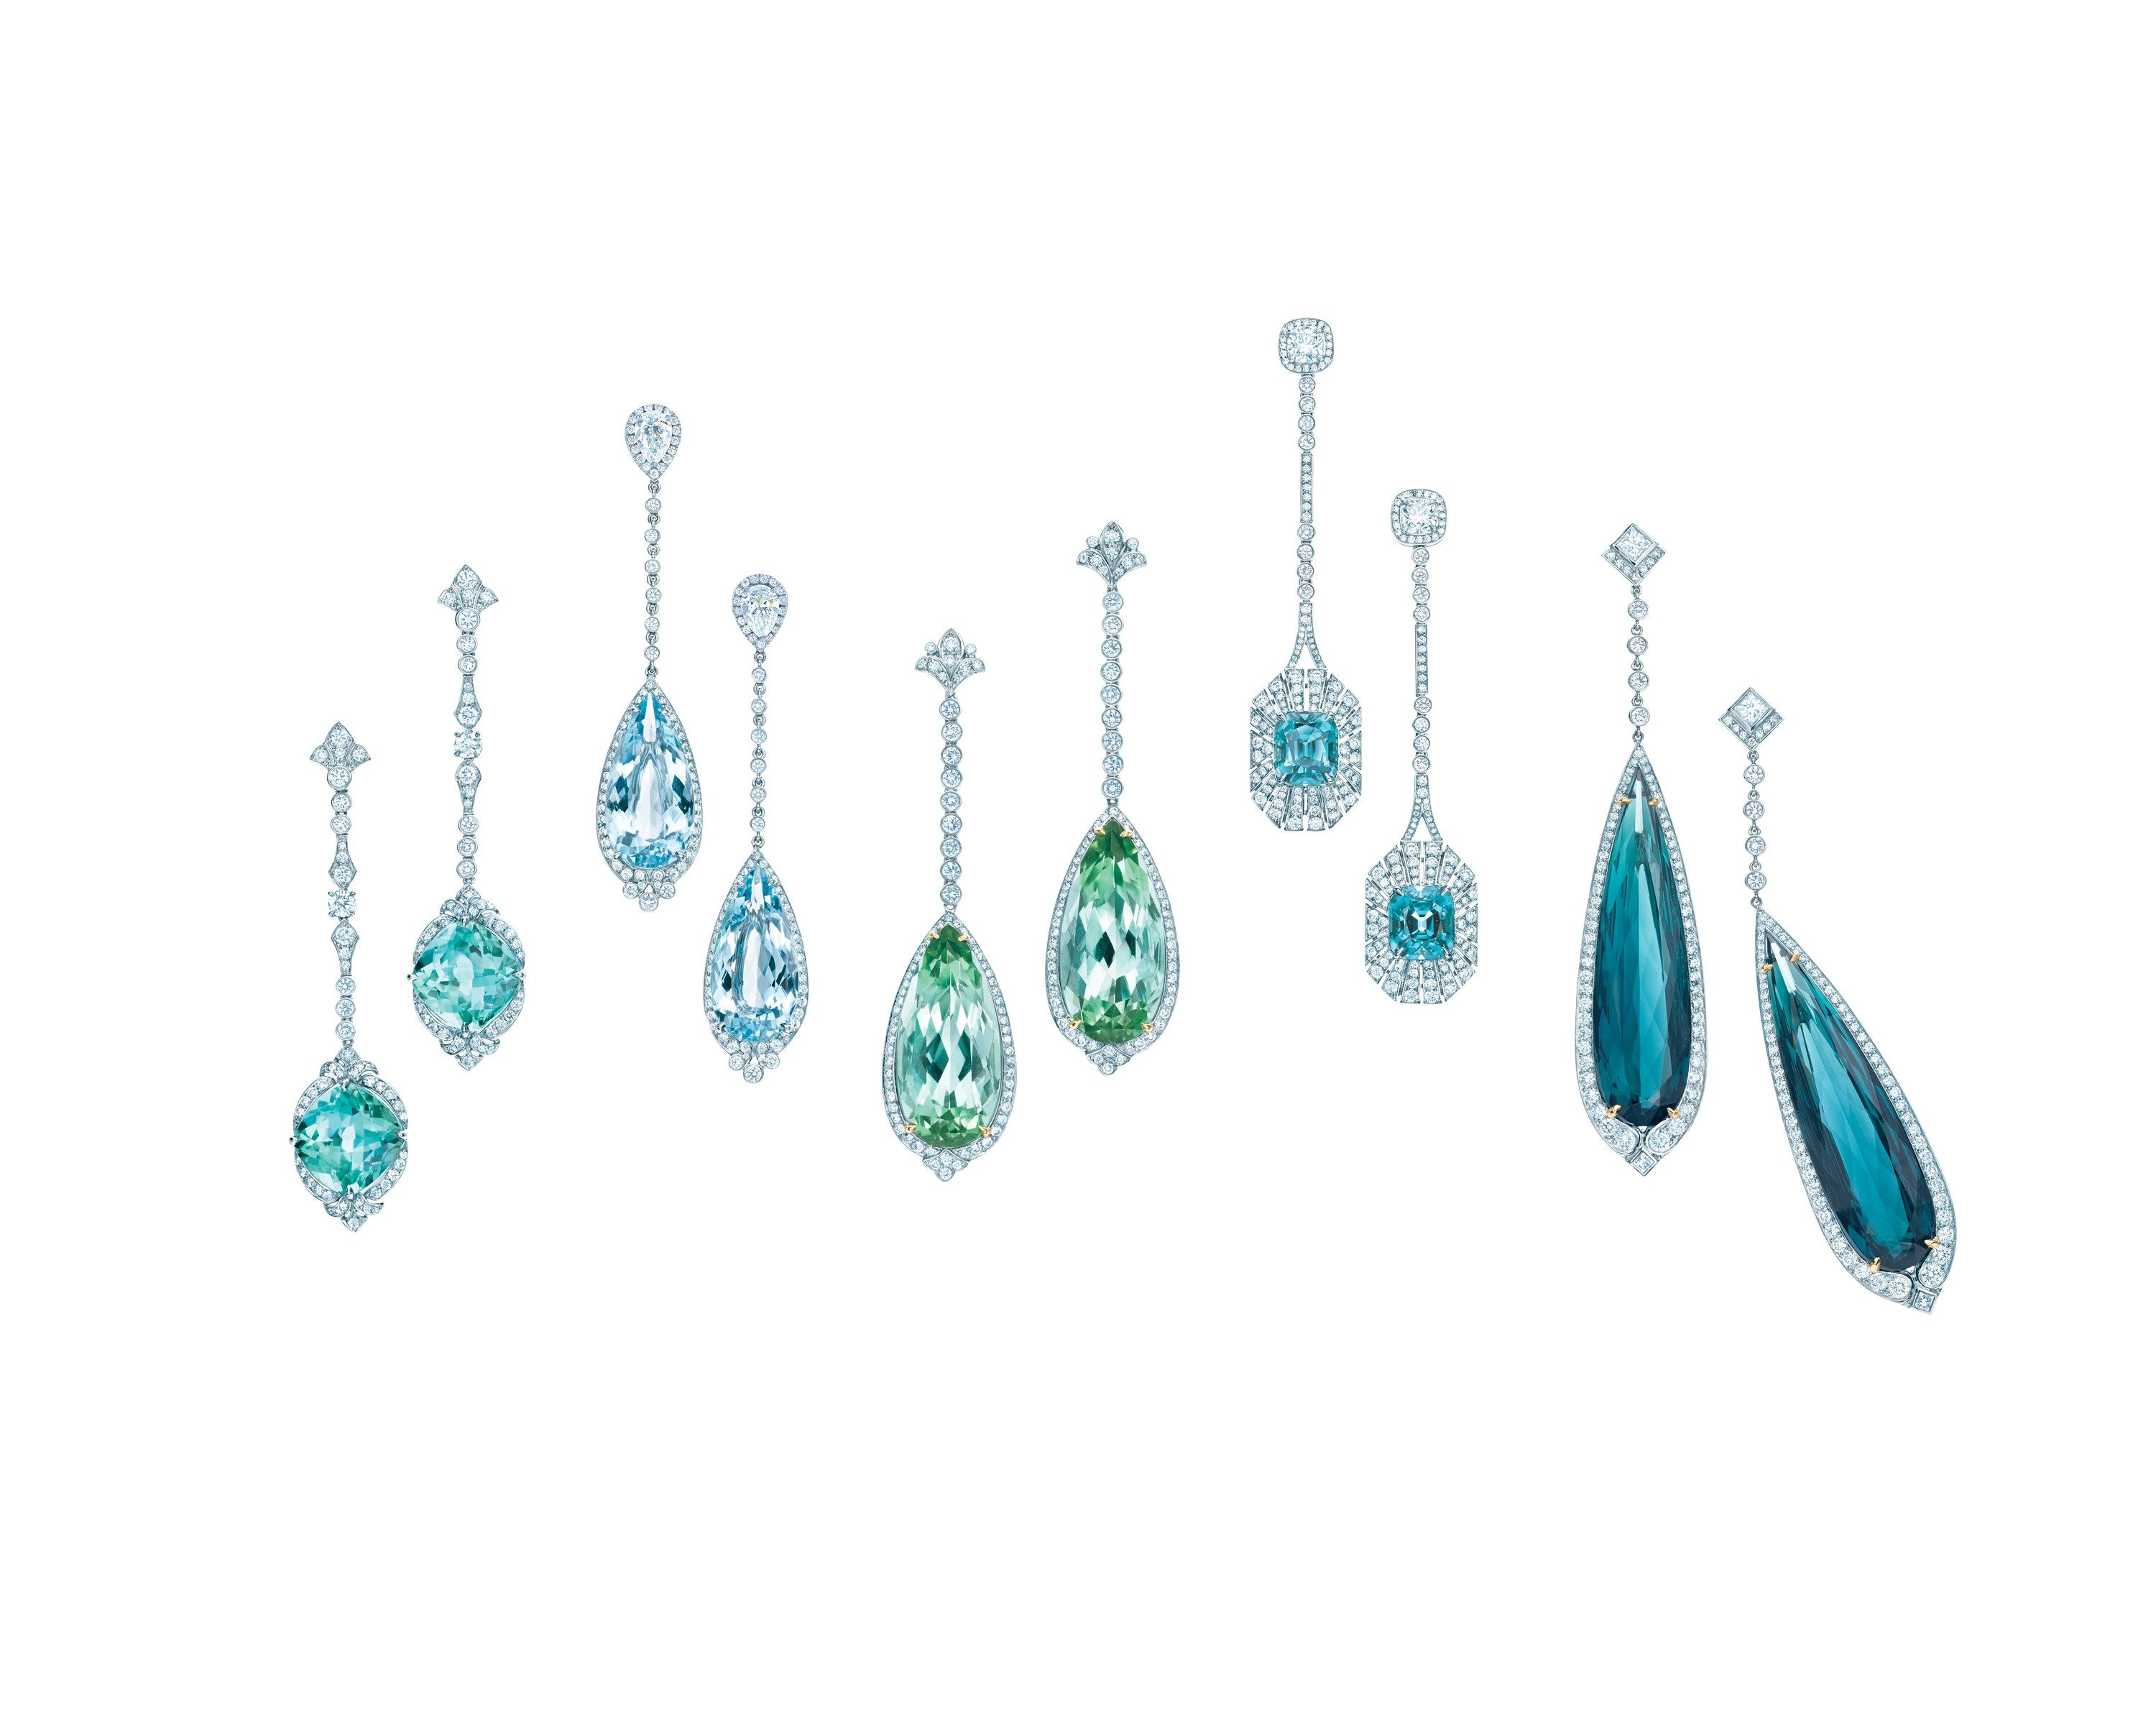 online tiffany earrings and christies christie chandelier aquamarine co diamond nyr jewels s